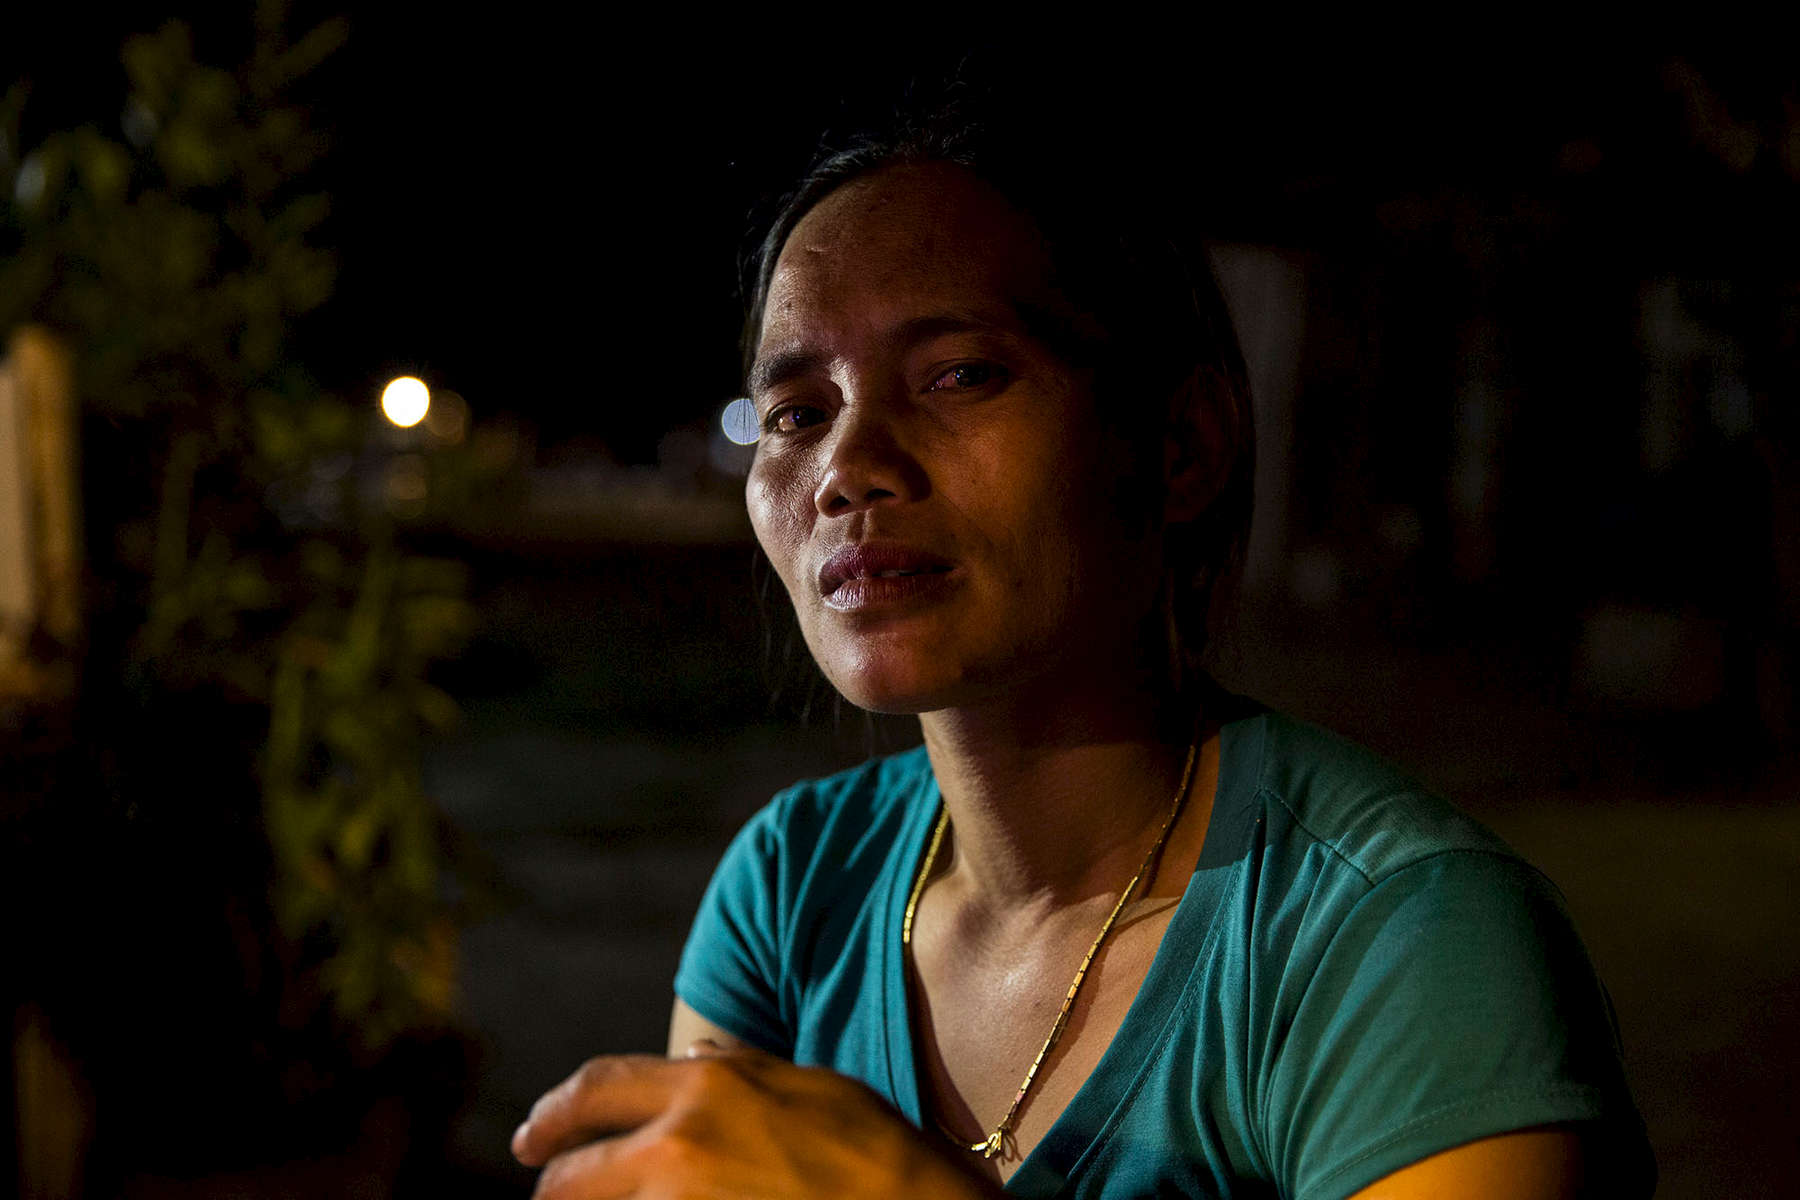 Pong was 13-years-old when she was held at gunpoint by Burmese soldiers while tending to her family's water buffalo at their home in Shan State. They demanded information about Shan soldiers in the area. She walked for 10 days to reach the Thai border with her family nearly 20 years ago.